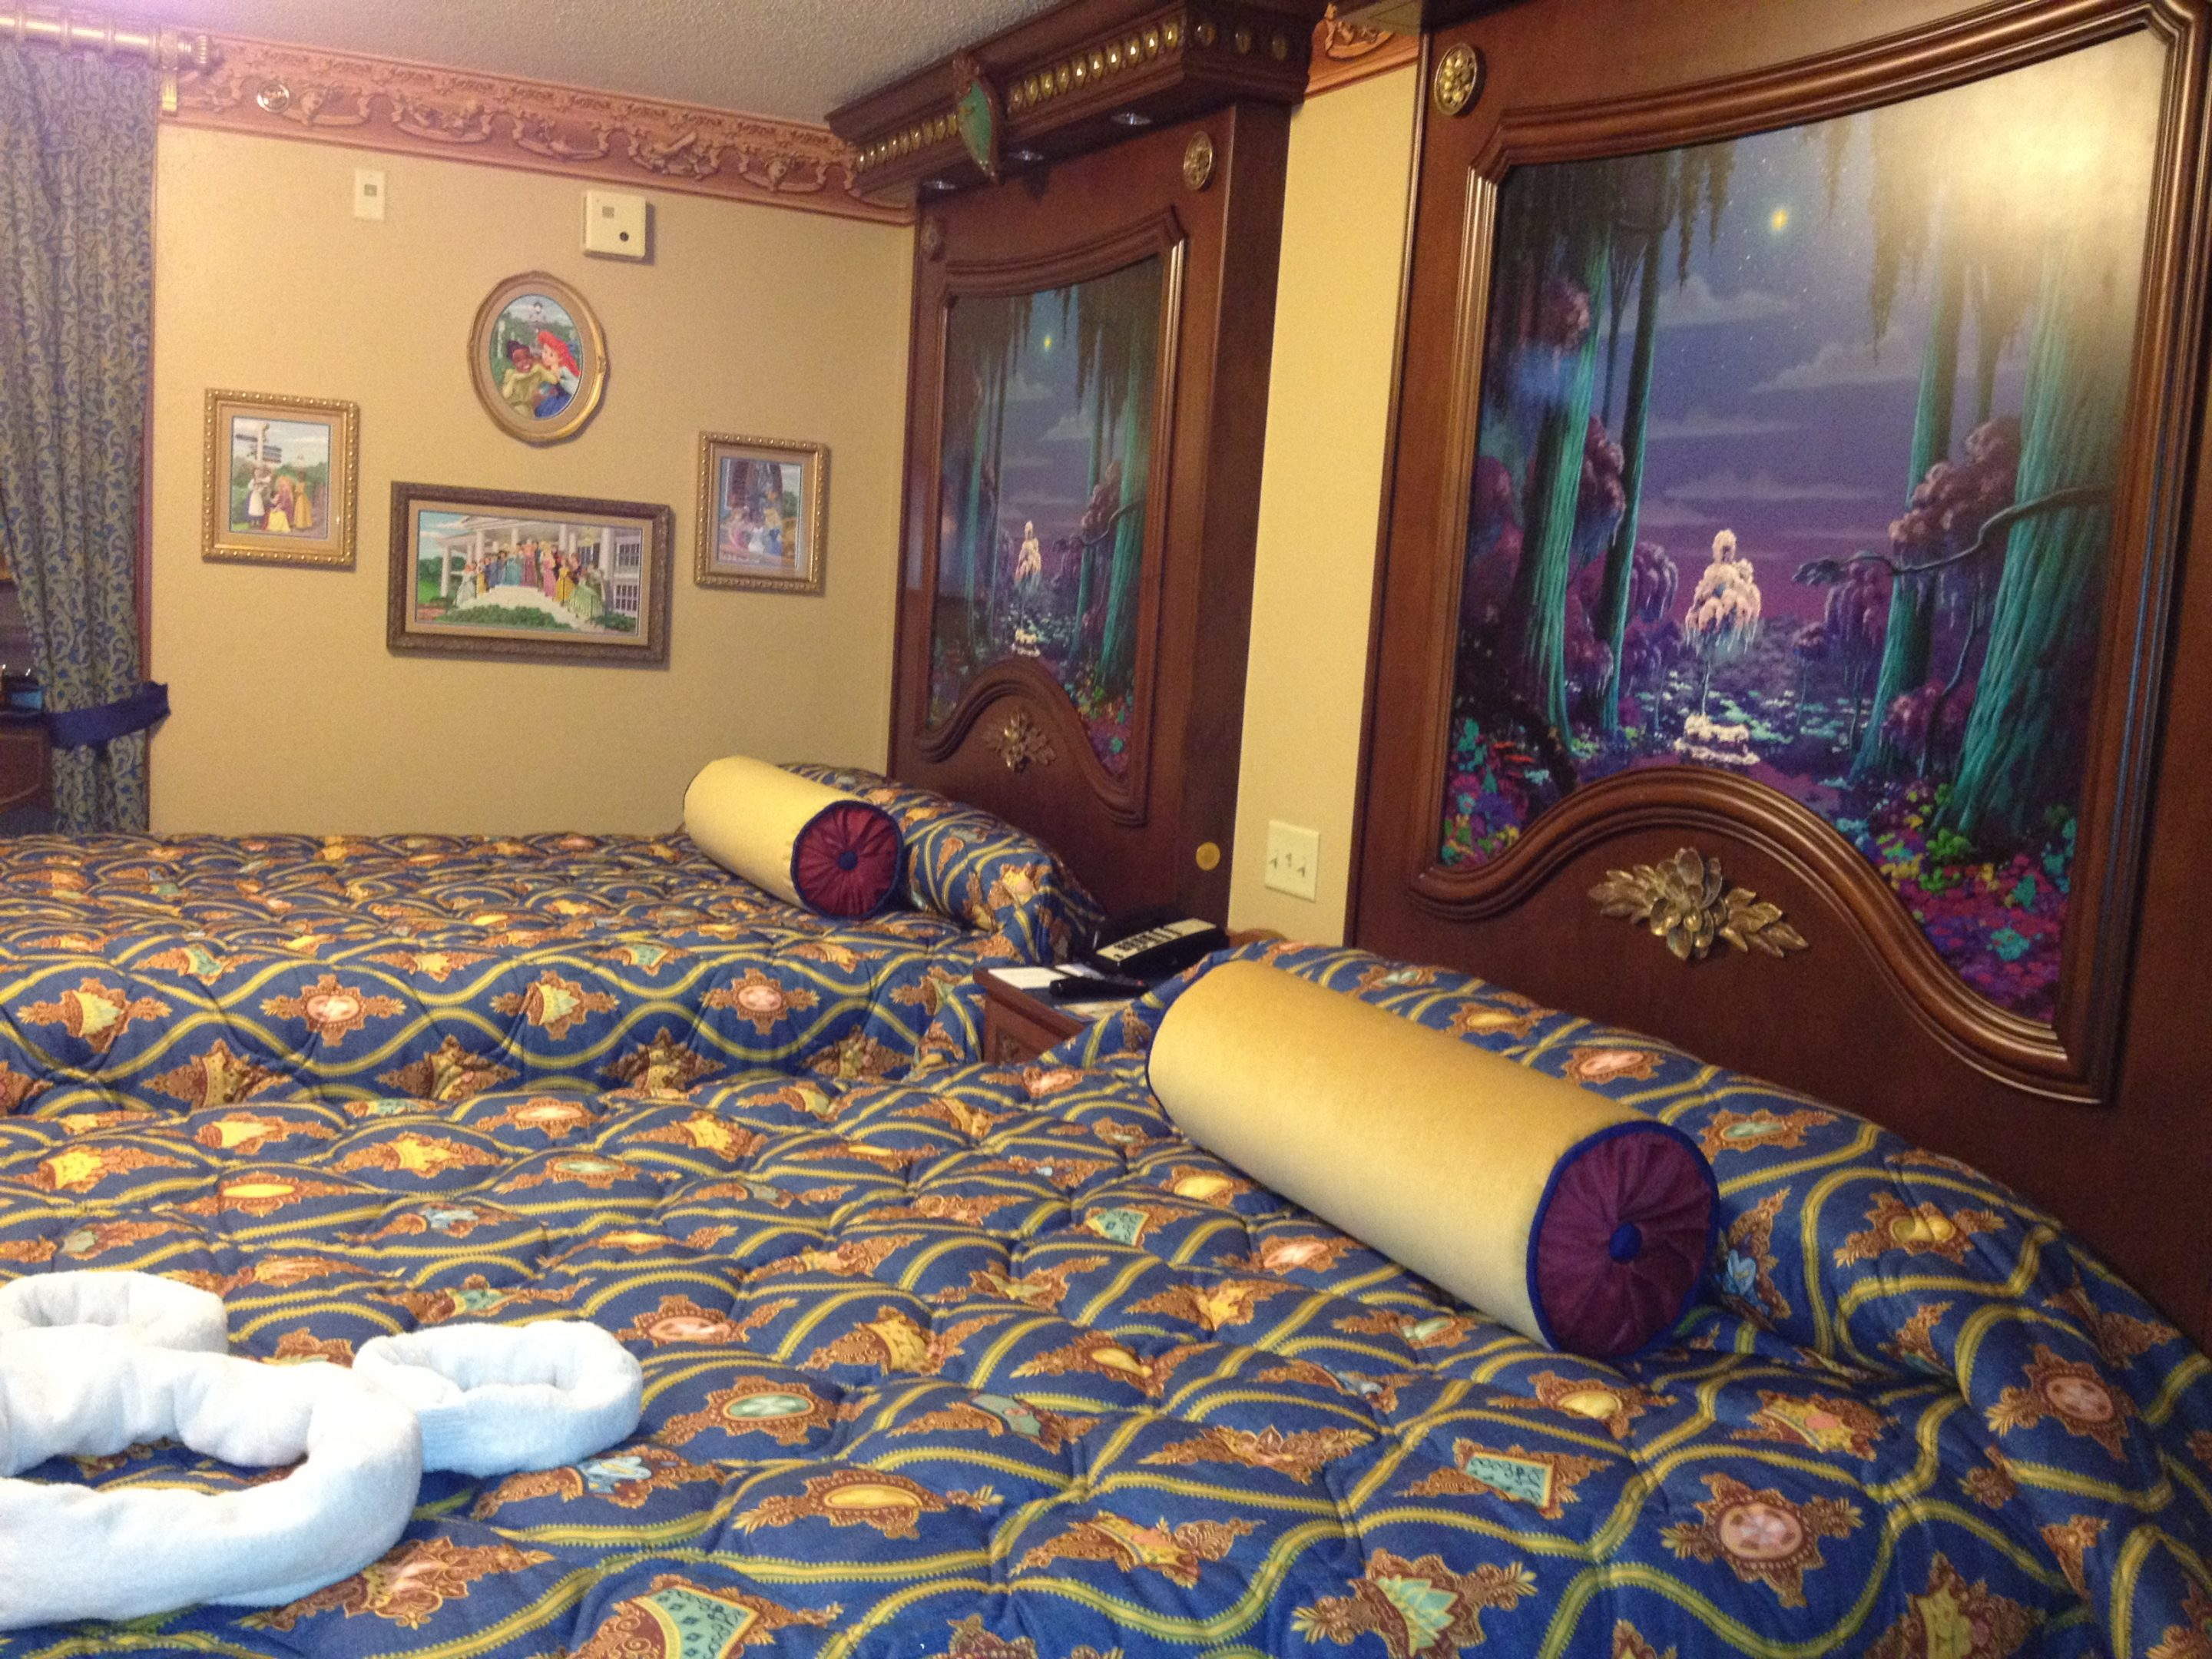 VIDEO: Tour the Gorgeous Royal Guest Rooms at Disney's Port Orleans